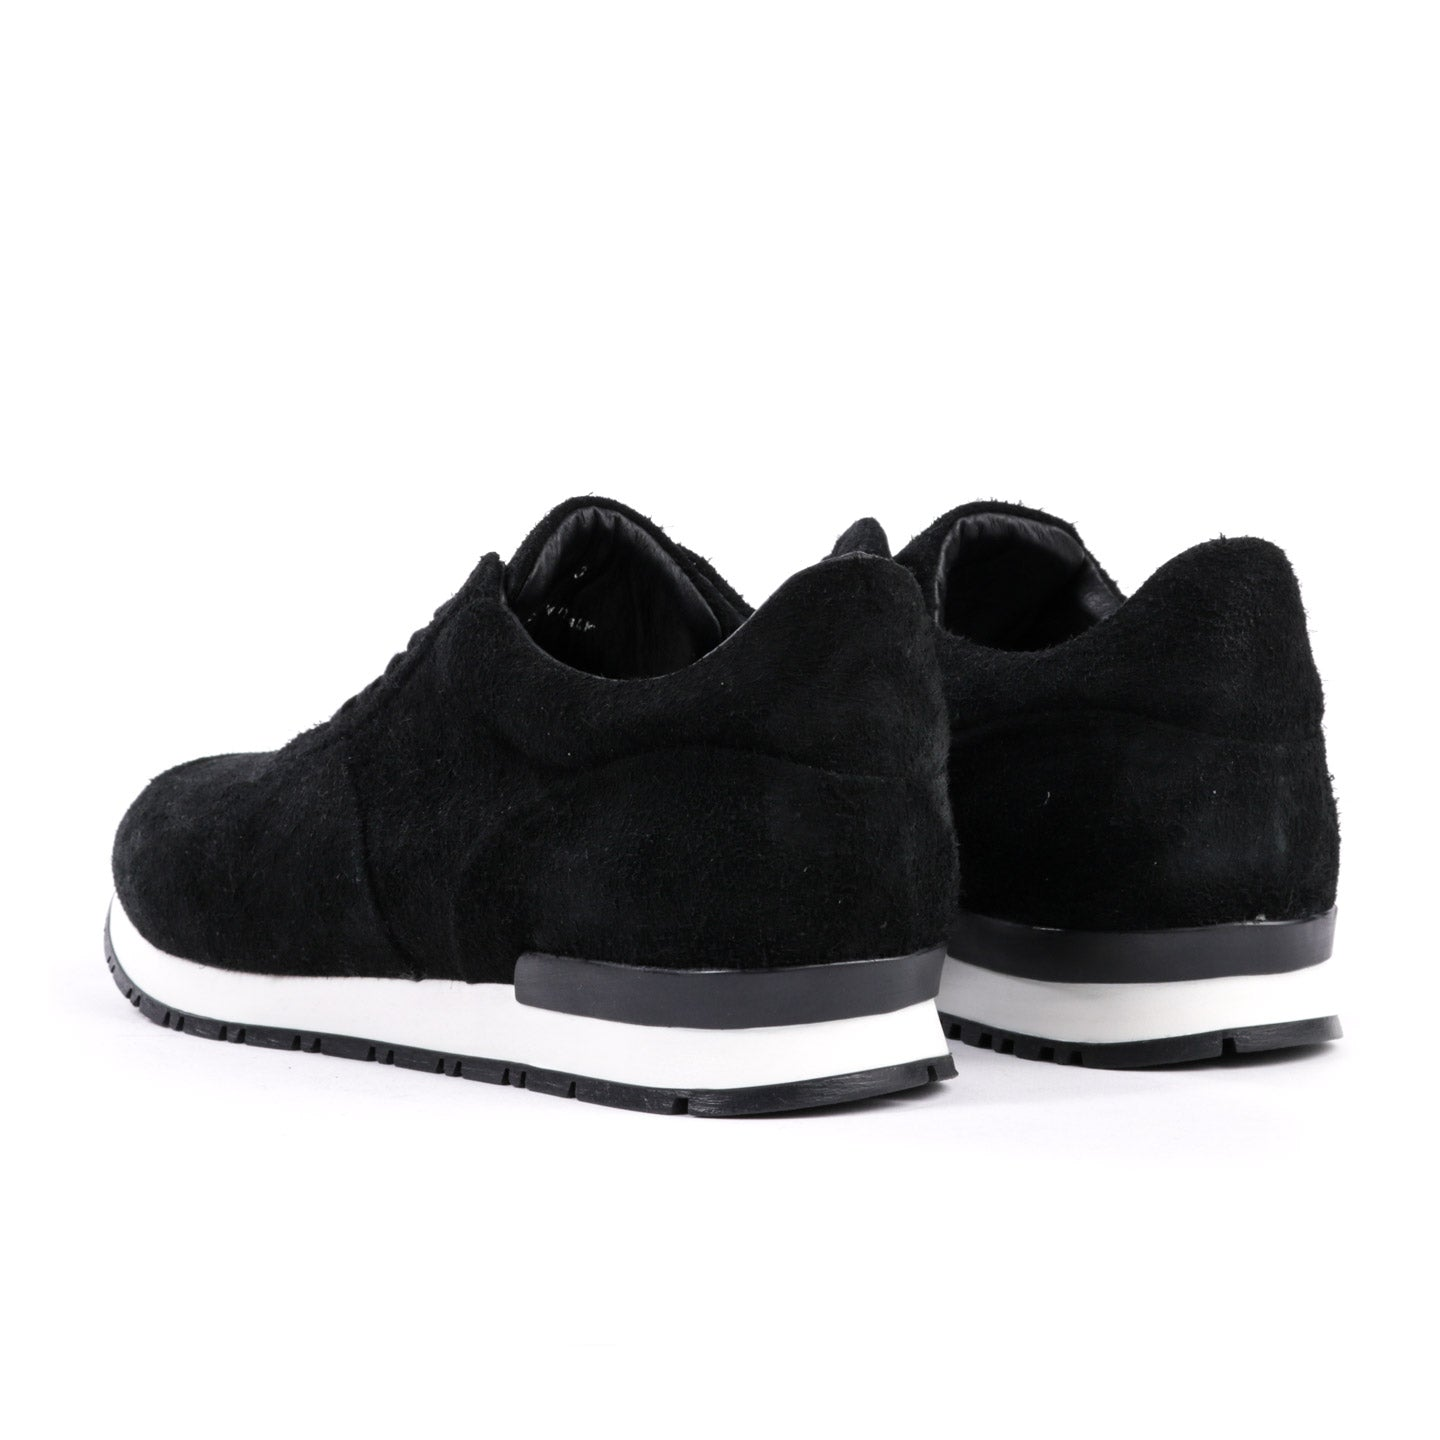 WINGS + HORNS WAXED SUEDE TRAINER BLACK